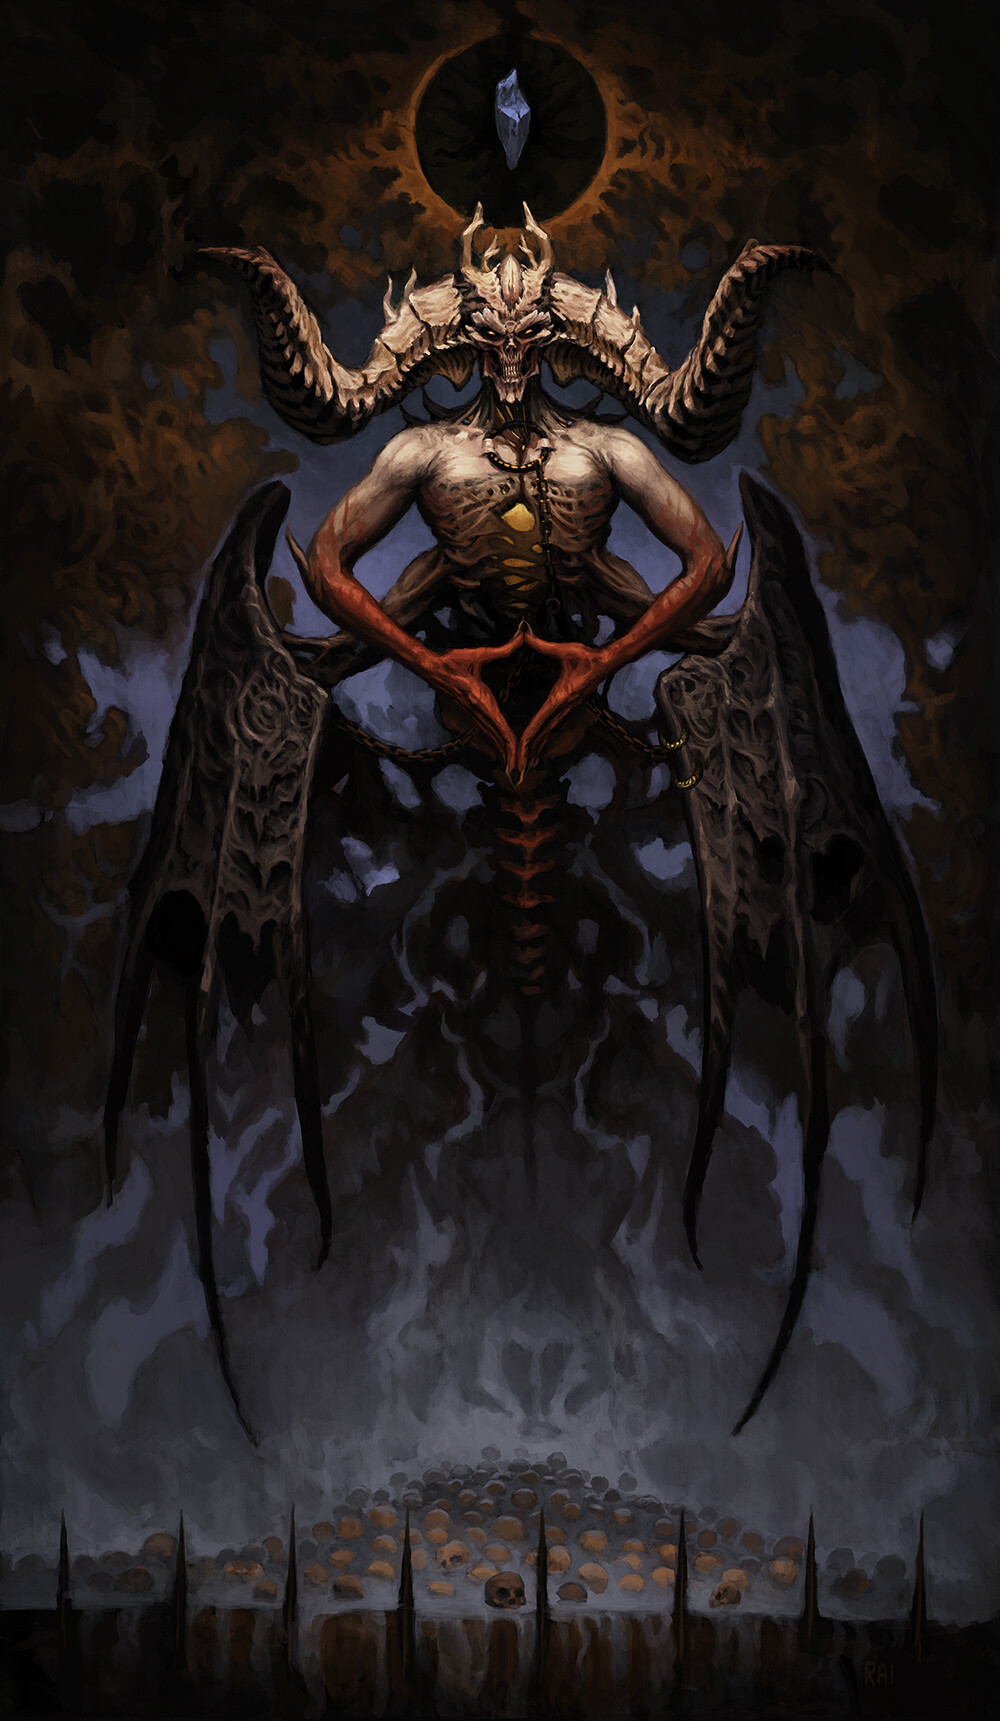 ArtStation - Mephisto, The Lord of Hatred (Diablo fan art), Rai Wald